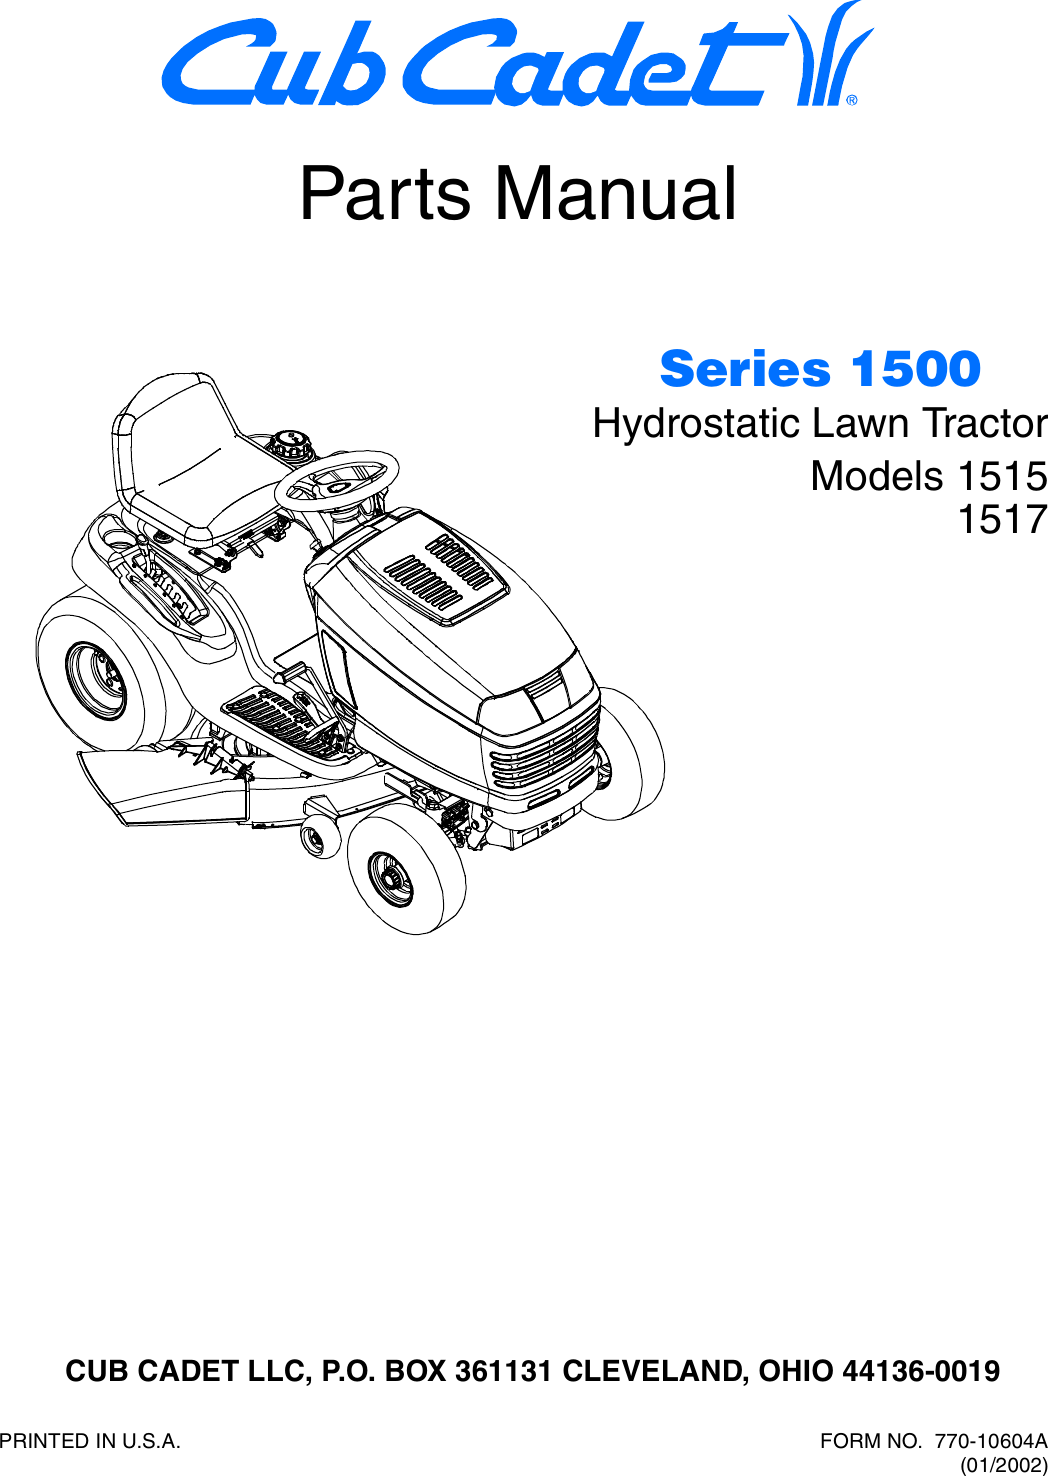 Cub Cadet Hydrostatic Lawn Tractor 1515 Parts Manual 770